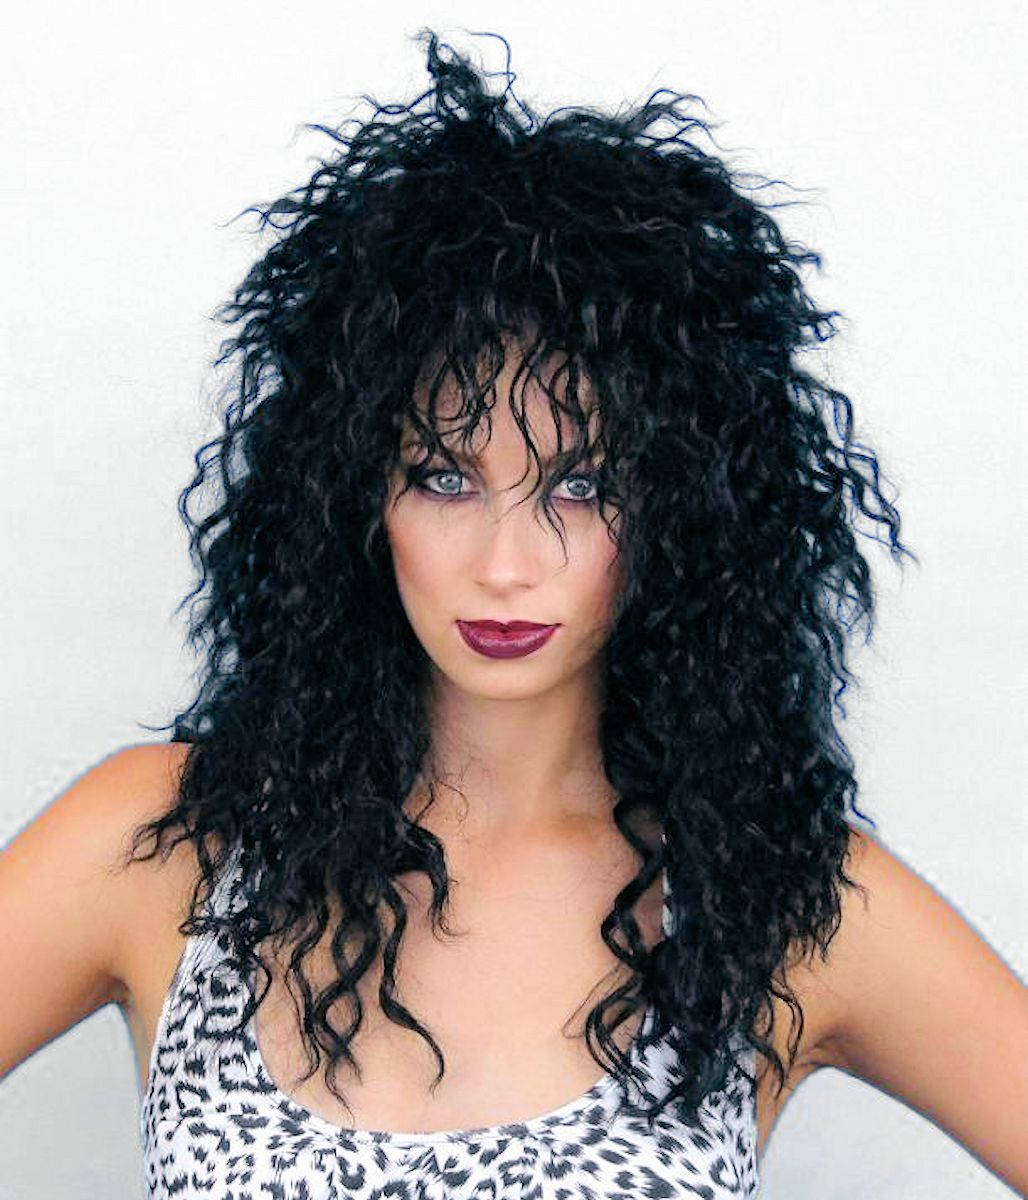 Details about 80s Rocker Cher Shaggy Crimped Black Wig Women s fancy dress  costume WIG 0b87ec650